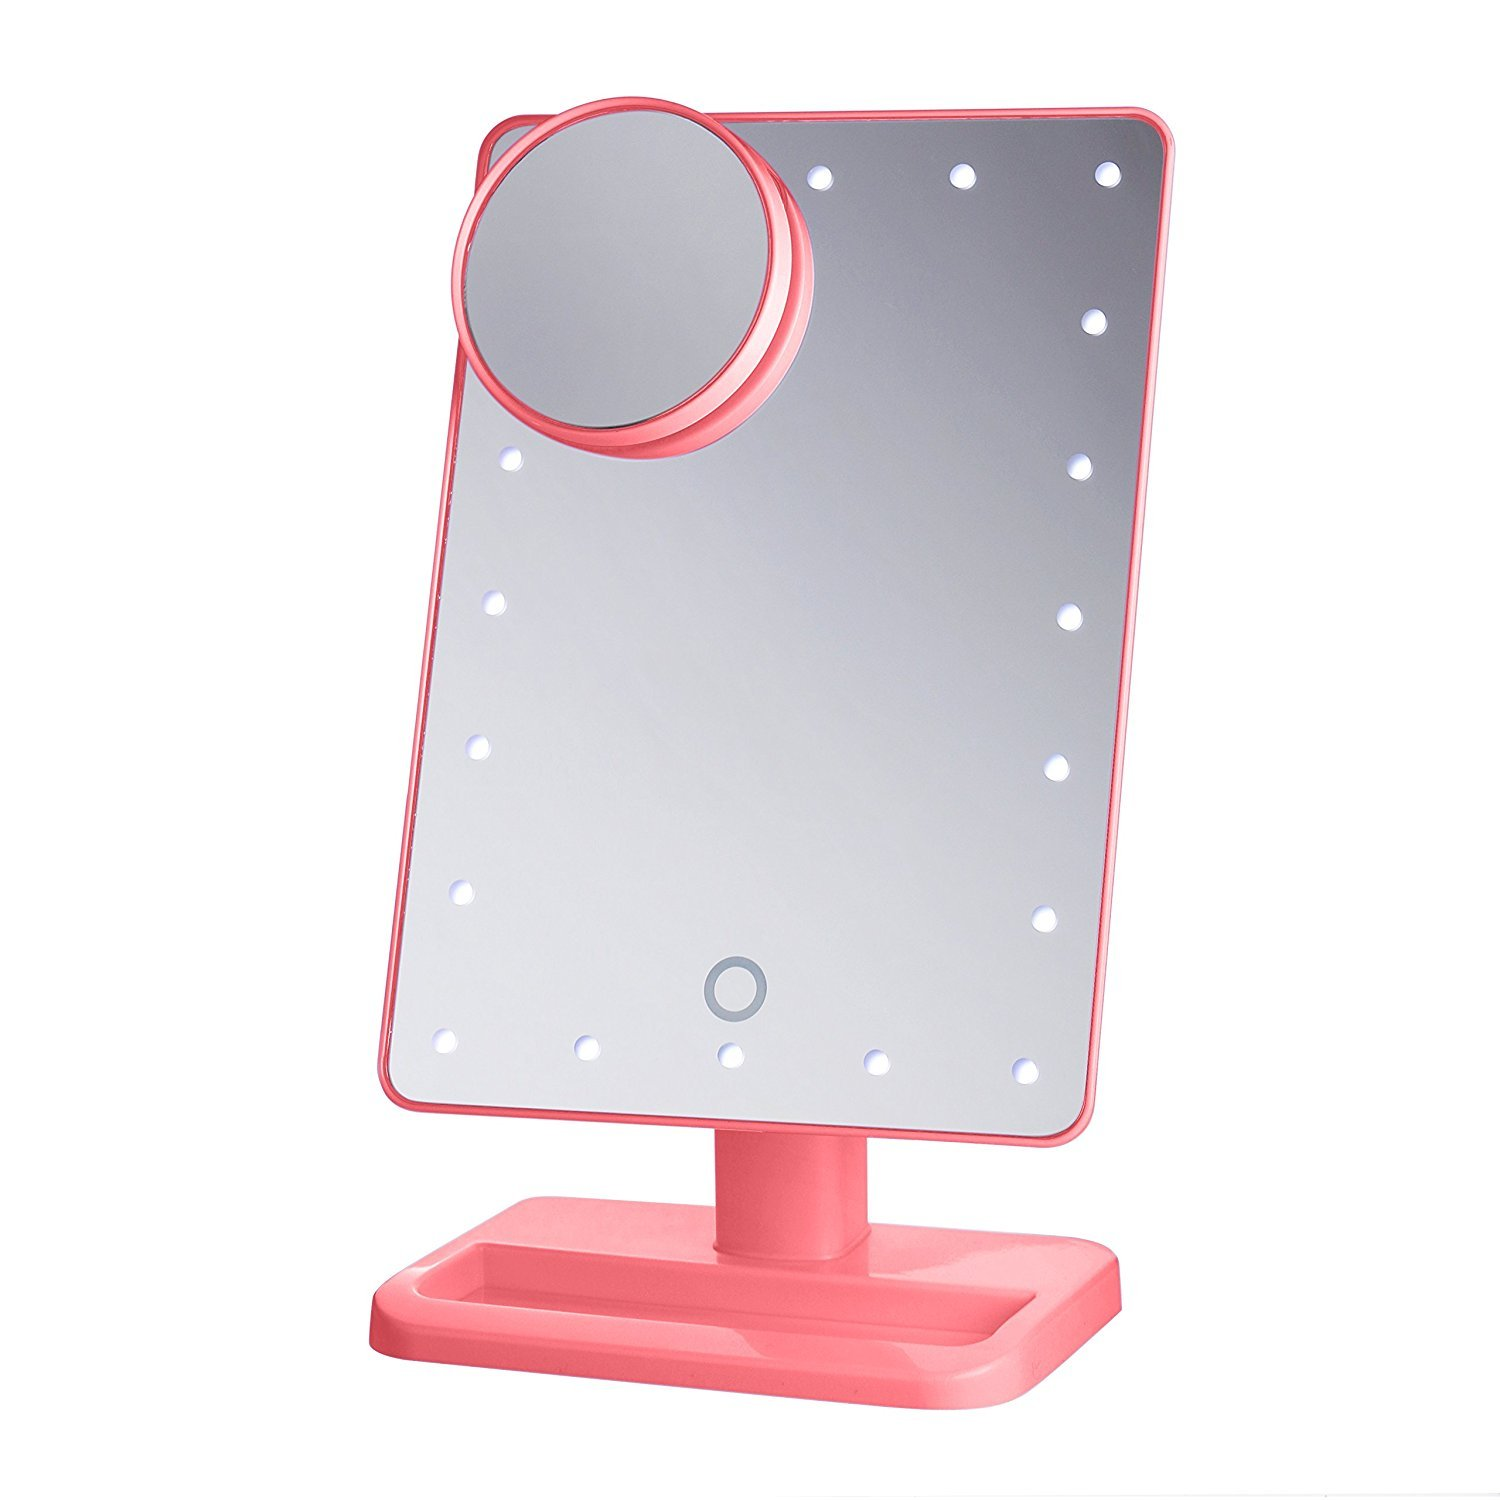 BeautifyBeauties Lighted Makeup Mirror - Vanity Mirror. 20 LED Bulbs, Adjustable Brightness, Detachable 10X Magnification Spot Mirror. Batteries Included (Pink)